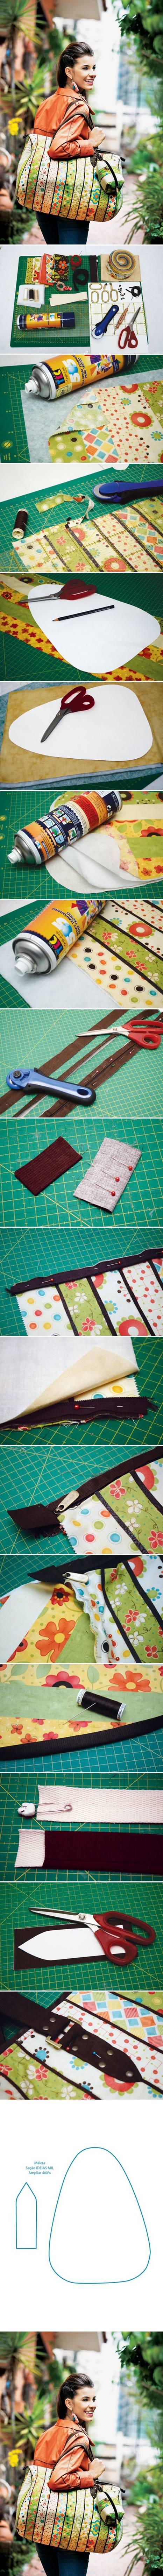 How to make Sew Travel Bag step by step DIY tutorial instructions